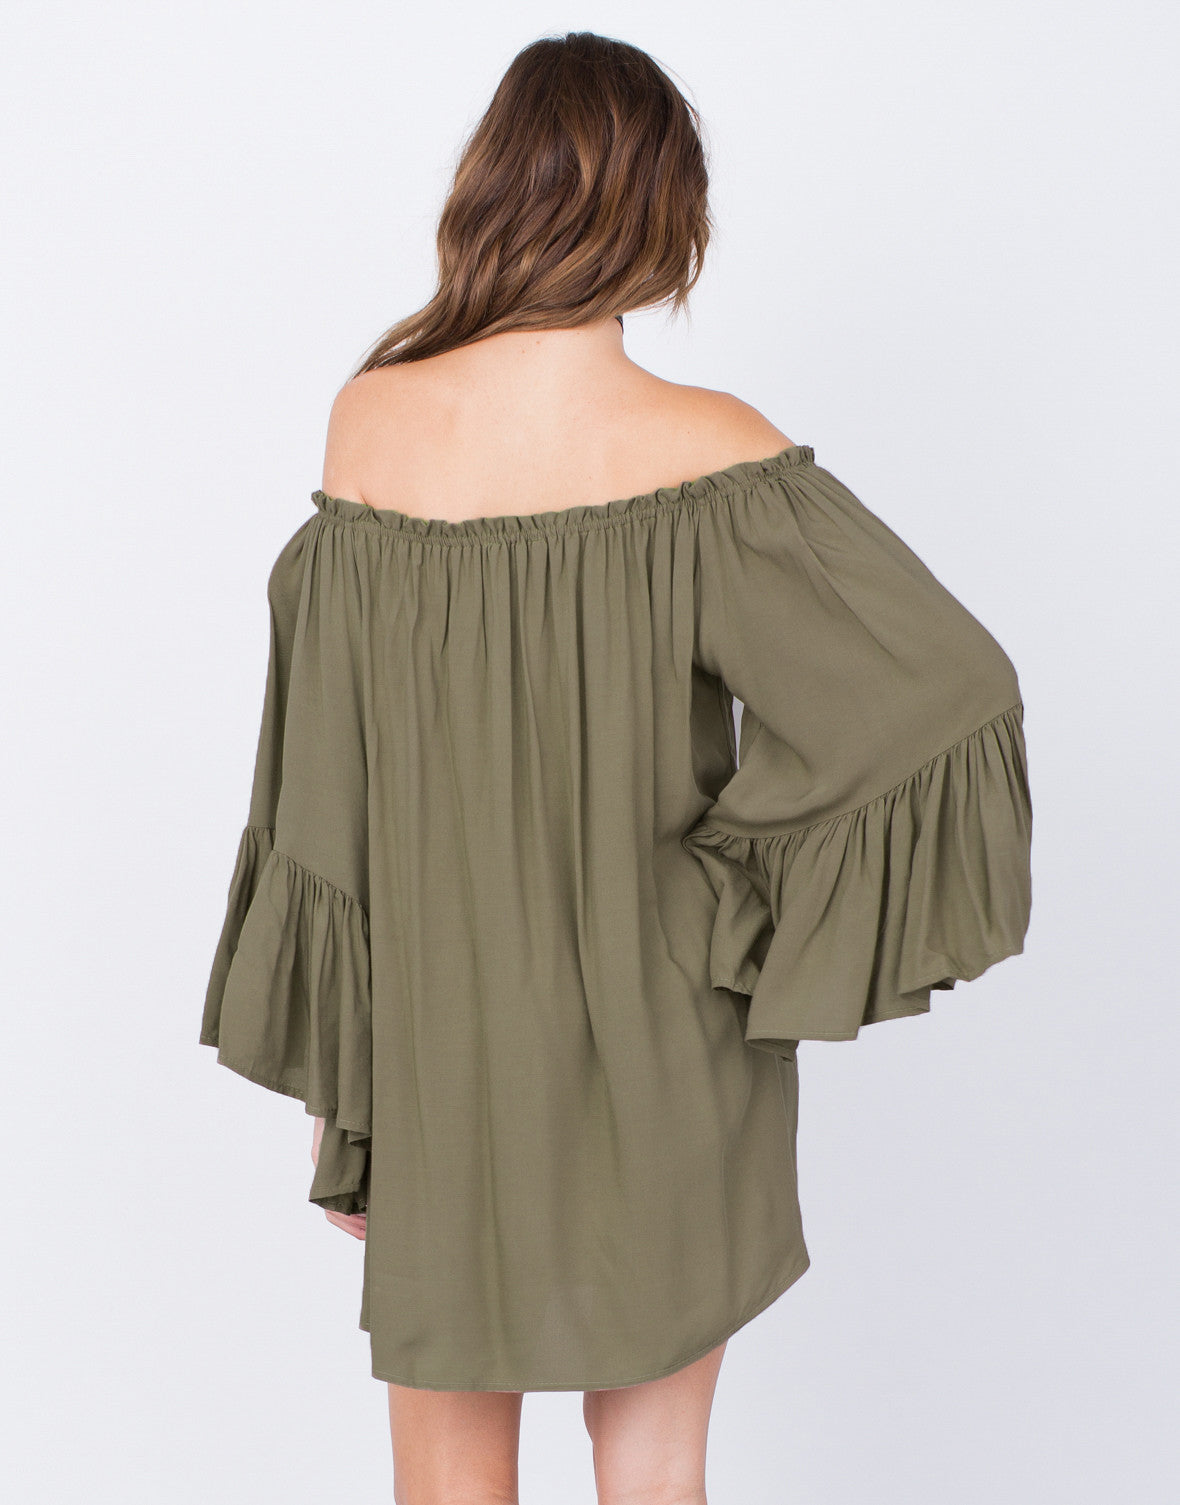 Back View of Frilly Off-the-Shoulder Dress